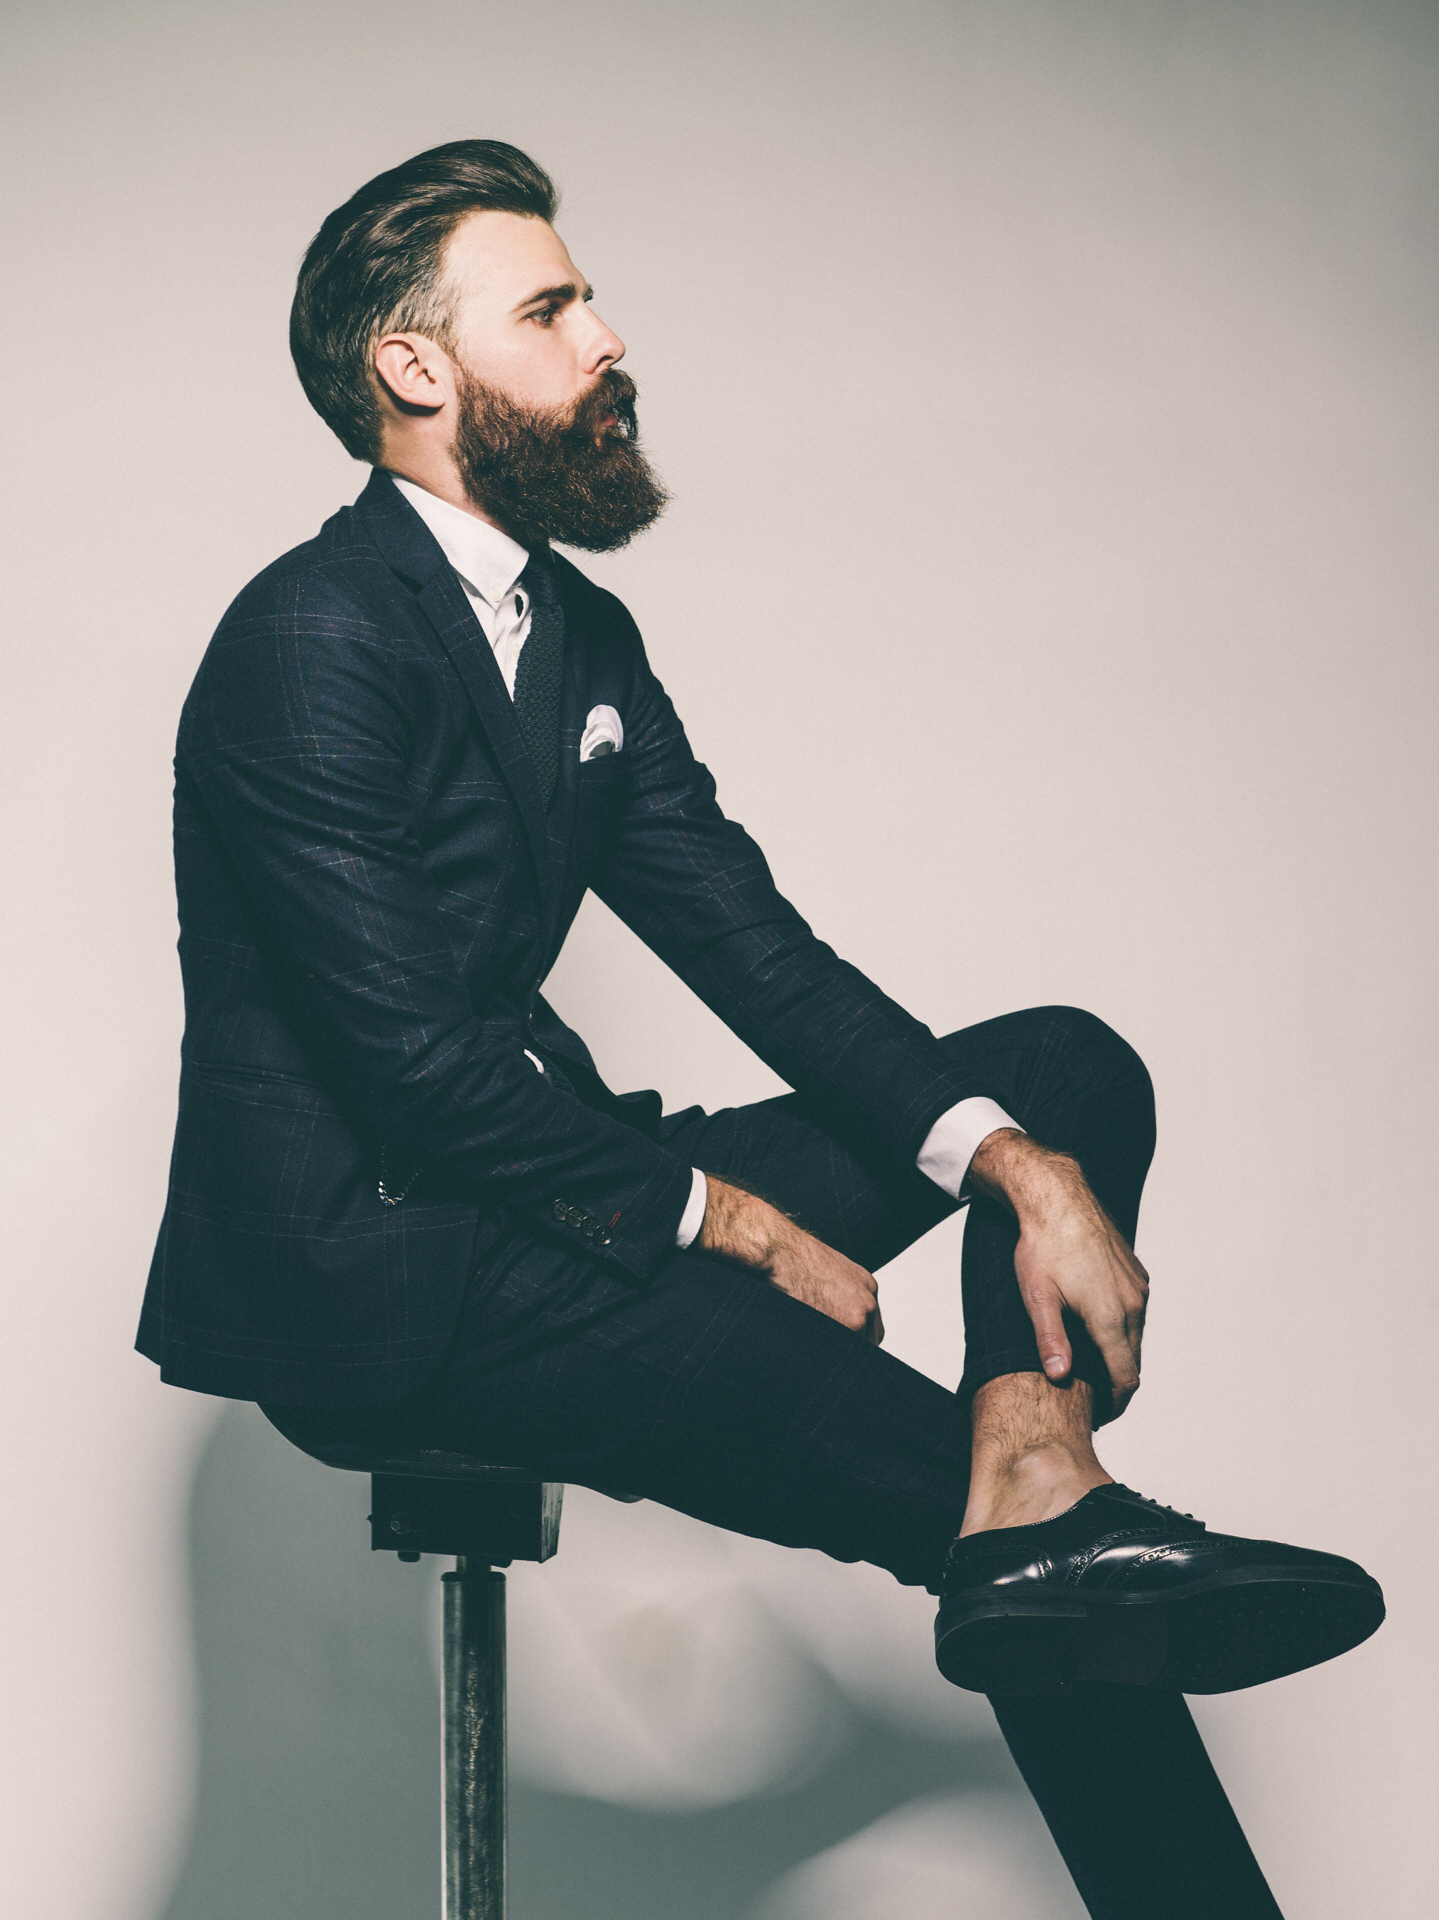 Beard-and-suit-What-more-would-a-woman-need-wallpaper-wp4404903